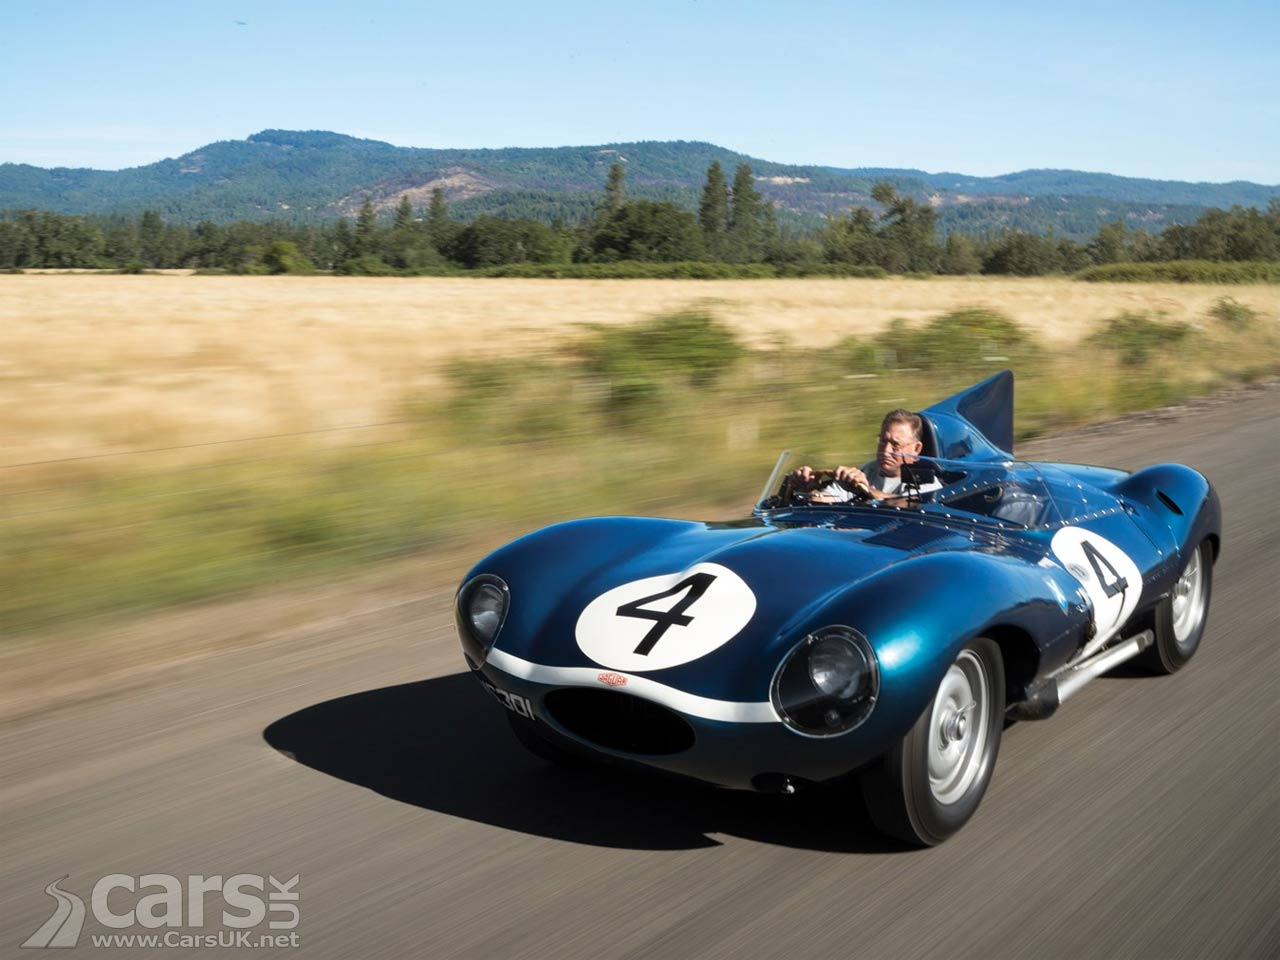 1956 le mans winning jaguar d type sells for world record million cars uk. Black Bedroom Furniture Sets. Home Design Ideas